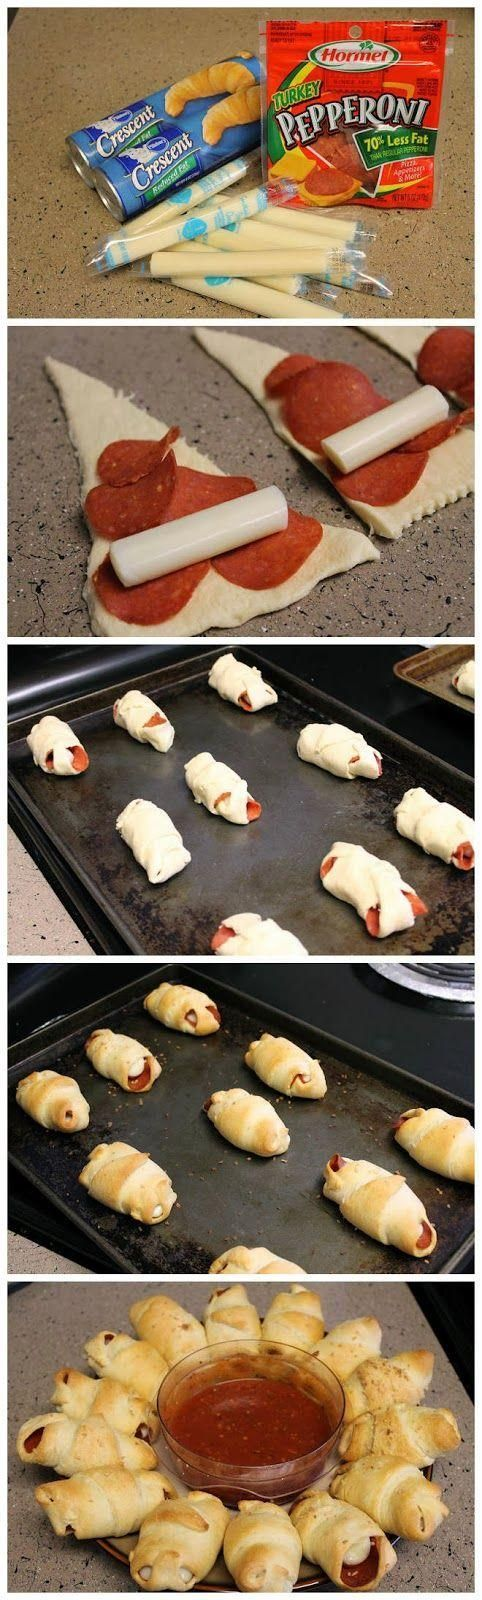 quick appetizer - this is a very quick and simple snack.  probably could choose a better cheese option~